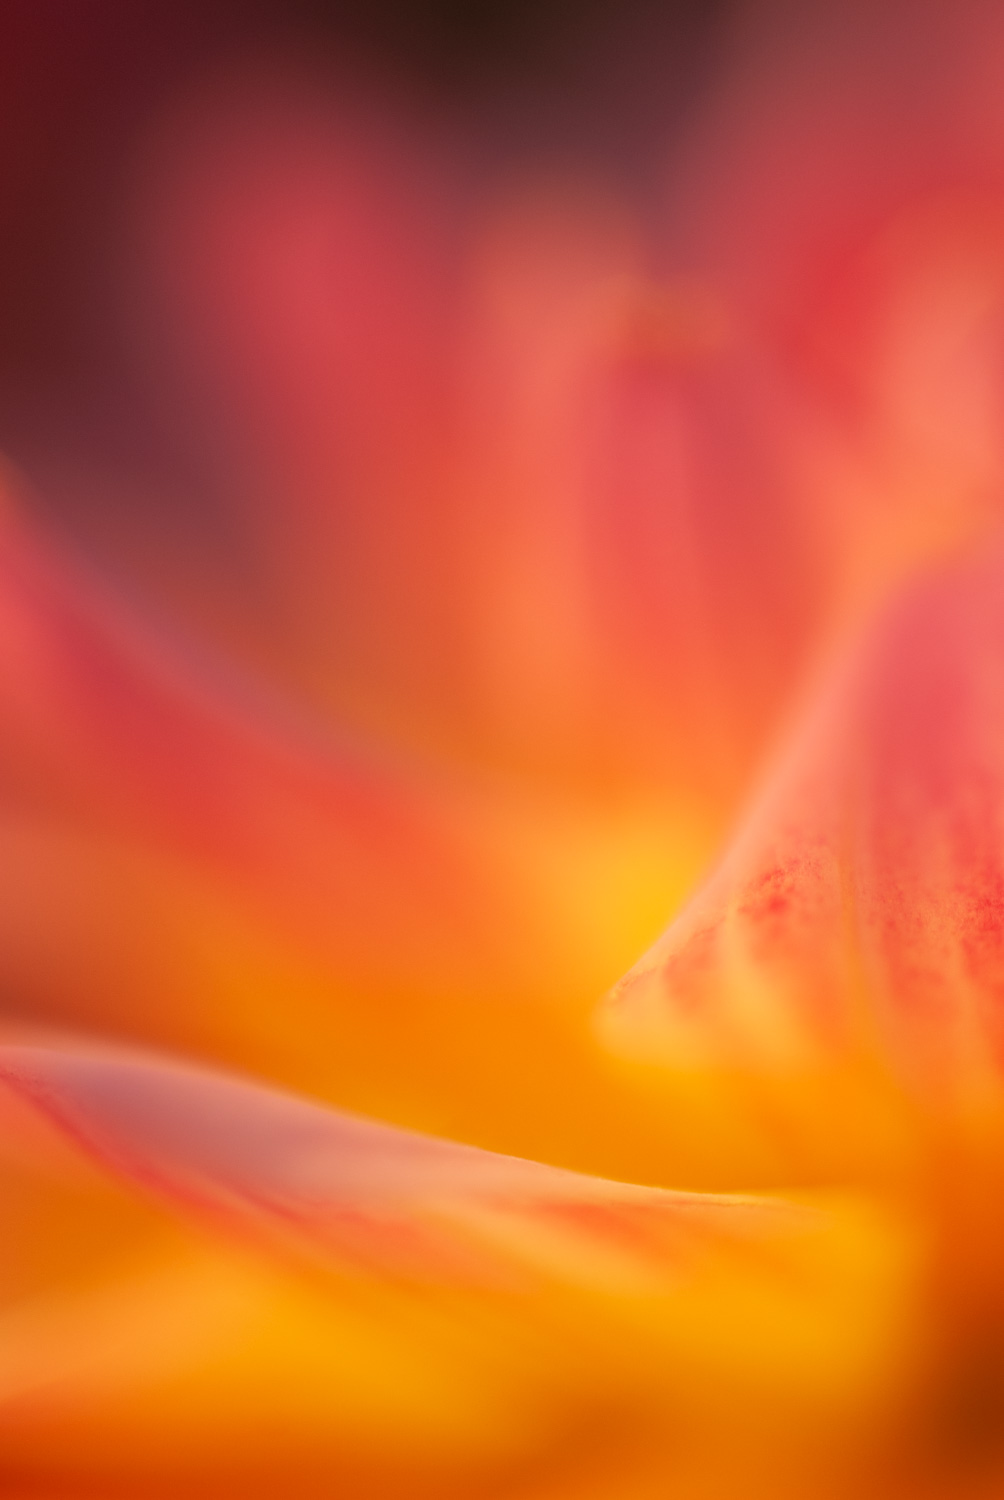 aperture priority mode and shutter priority mode shallow depth of field dahlia